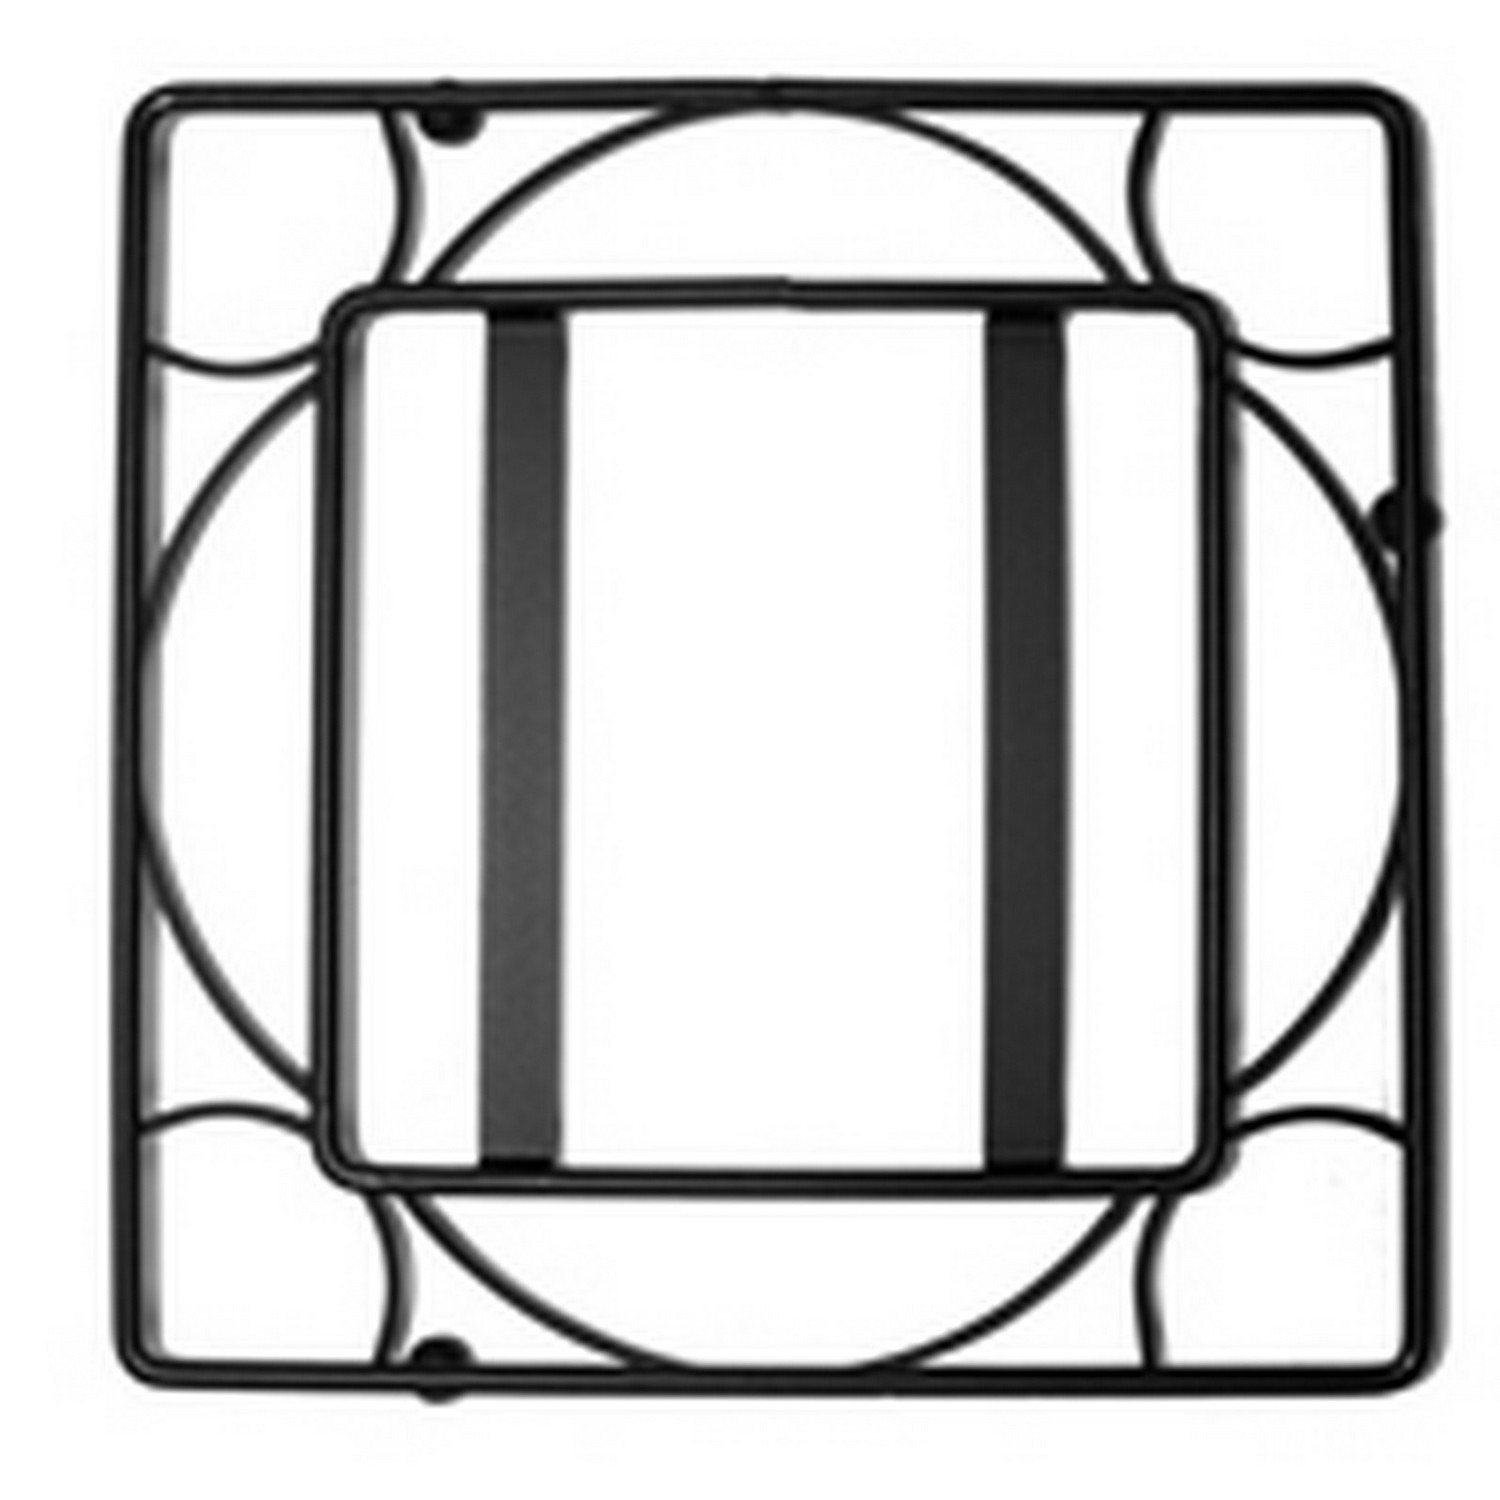 (908808) BLACK IRON TRIVET FRAME